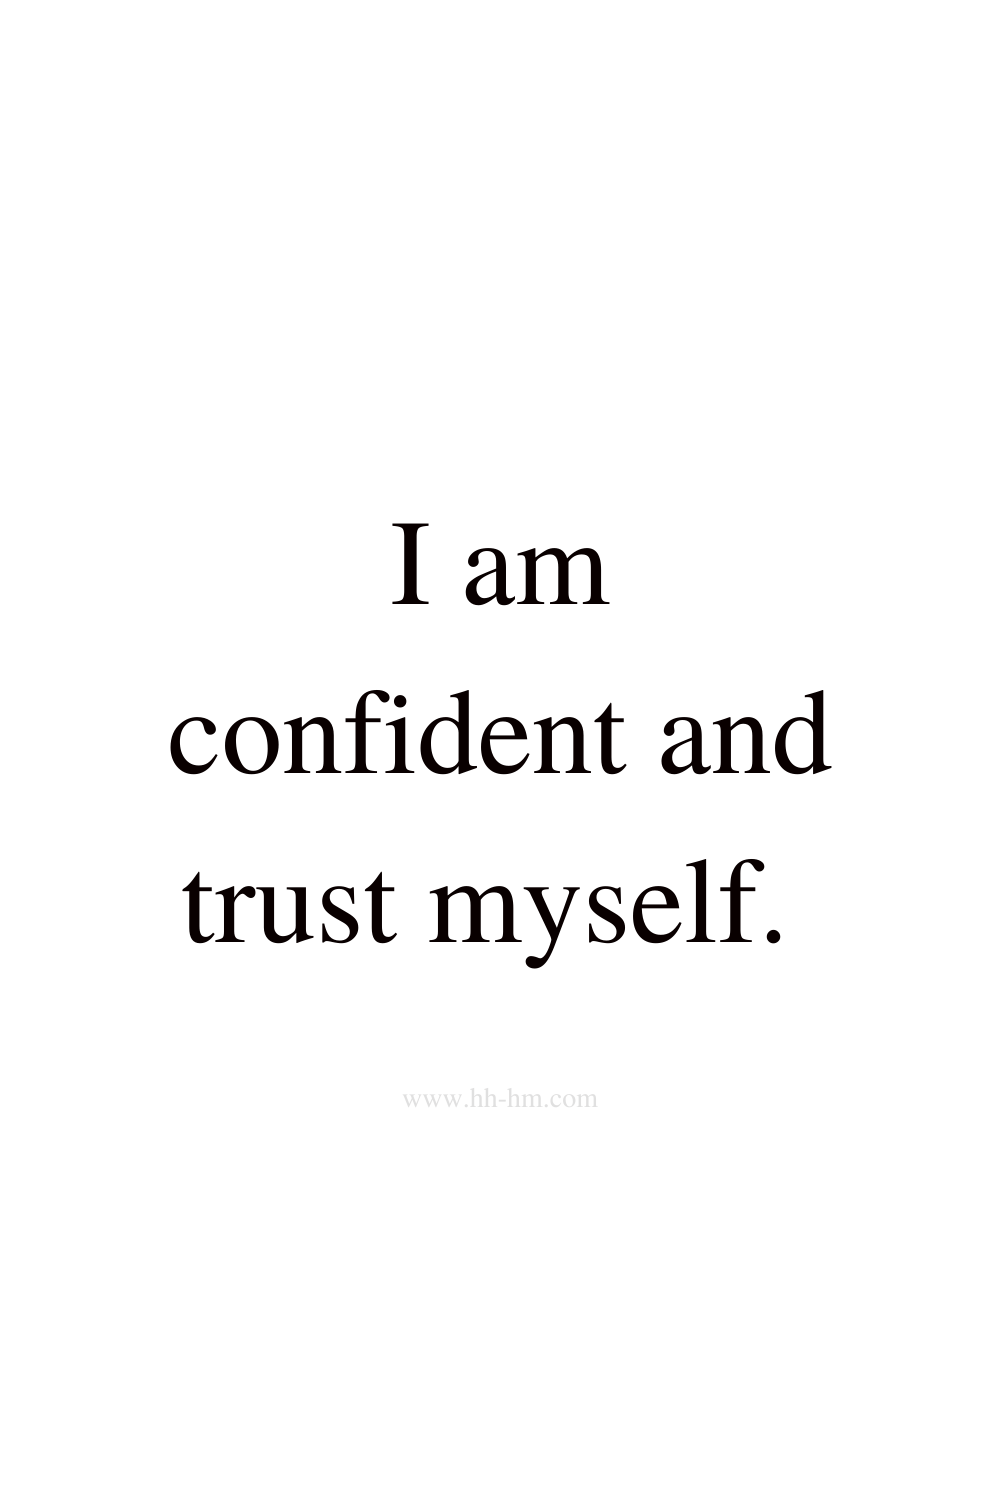 I am confident and trust myself - self love and self confidence morning affirmations